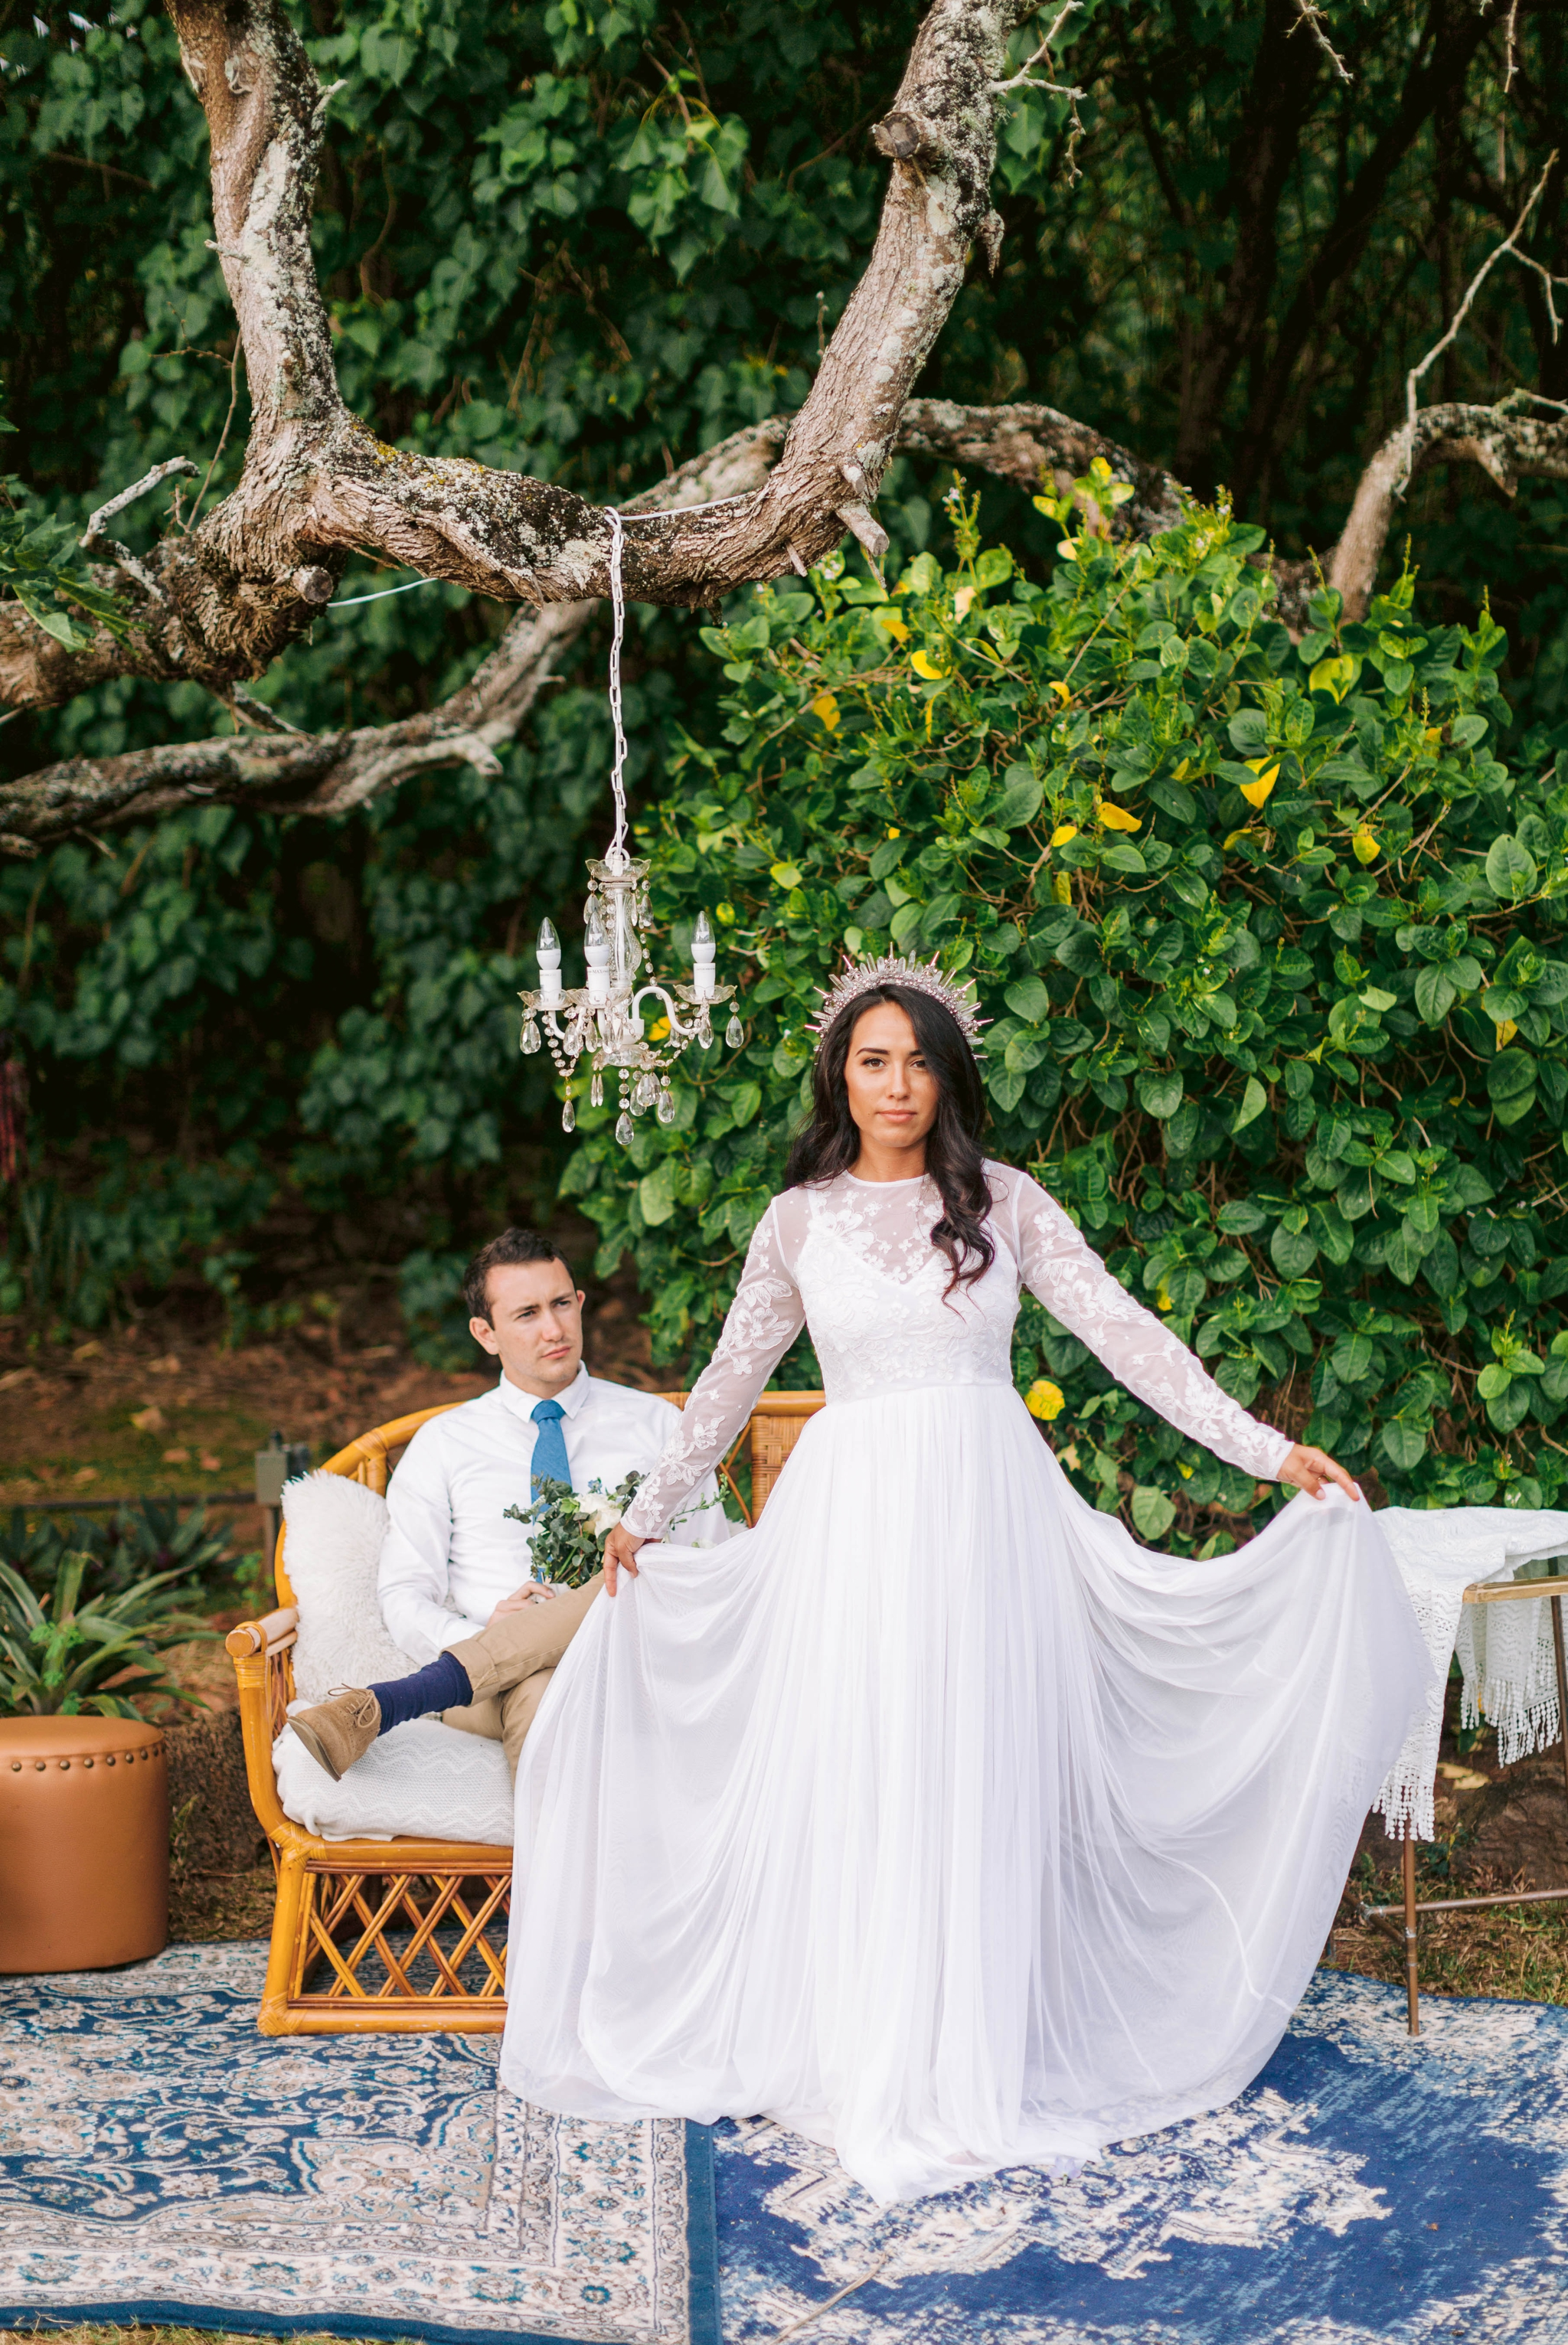 Bride and groom relaxing in an outdoor lounge with rattan furniture and blue rugs -  bride is wearing a wedding dress by asos and a crystal crown - Ana + Elijah - Wedding at Loulu Palm in Haleiwa, HI - Oahu Hawaii Wedding Photographer